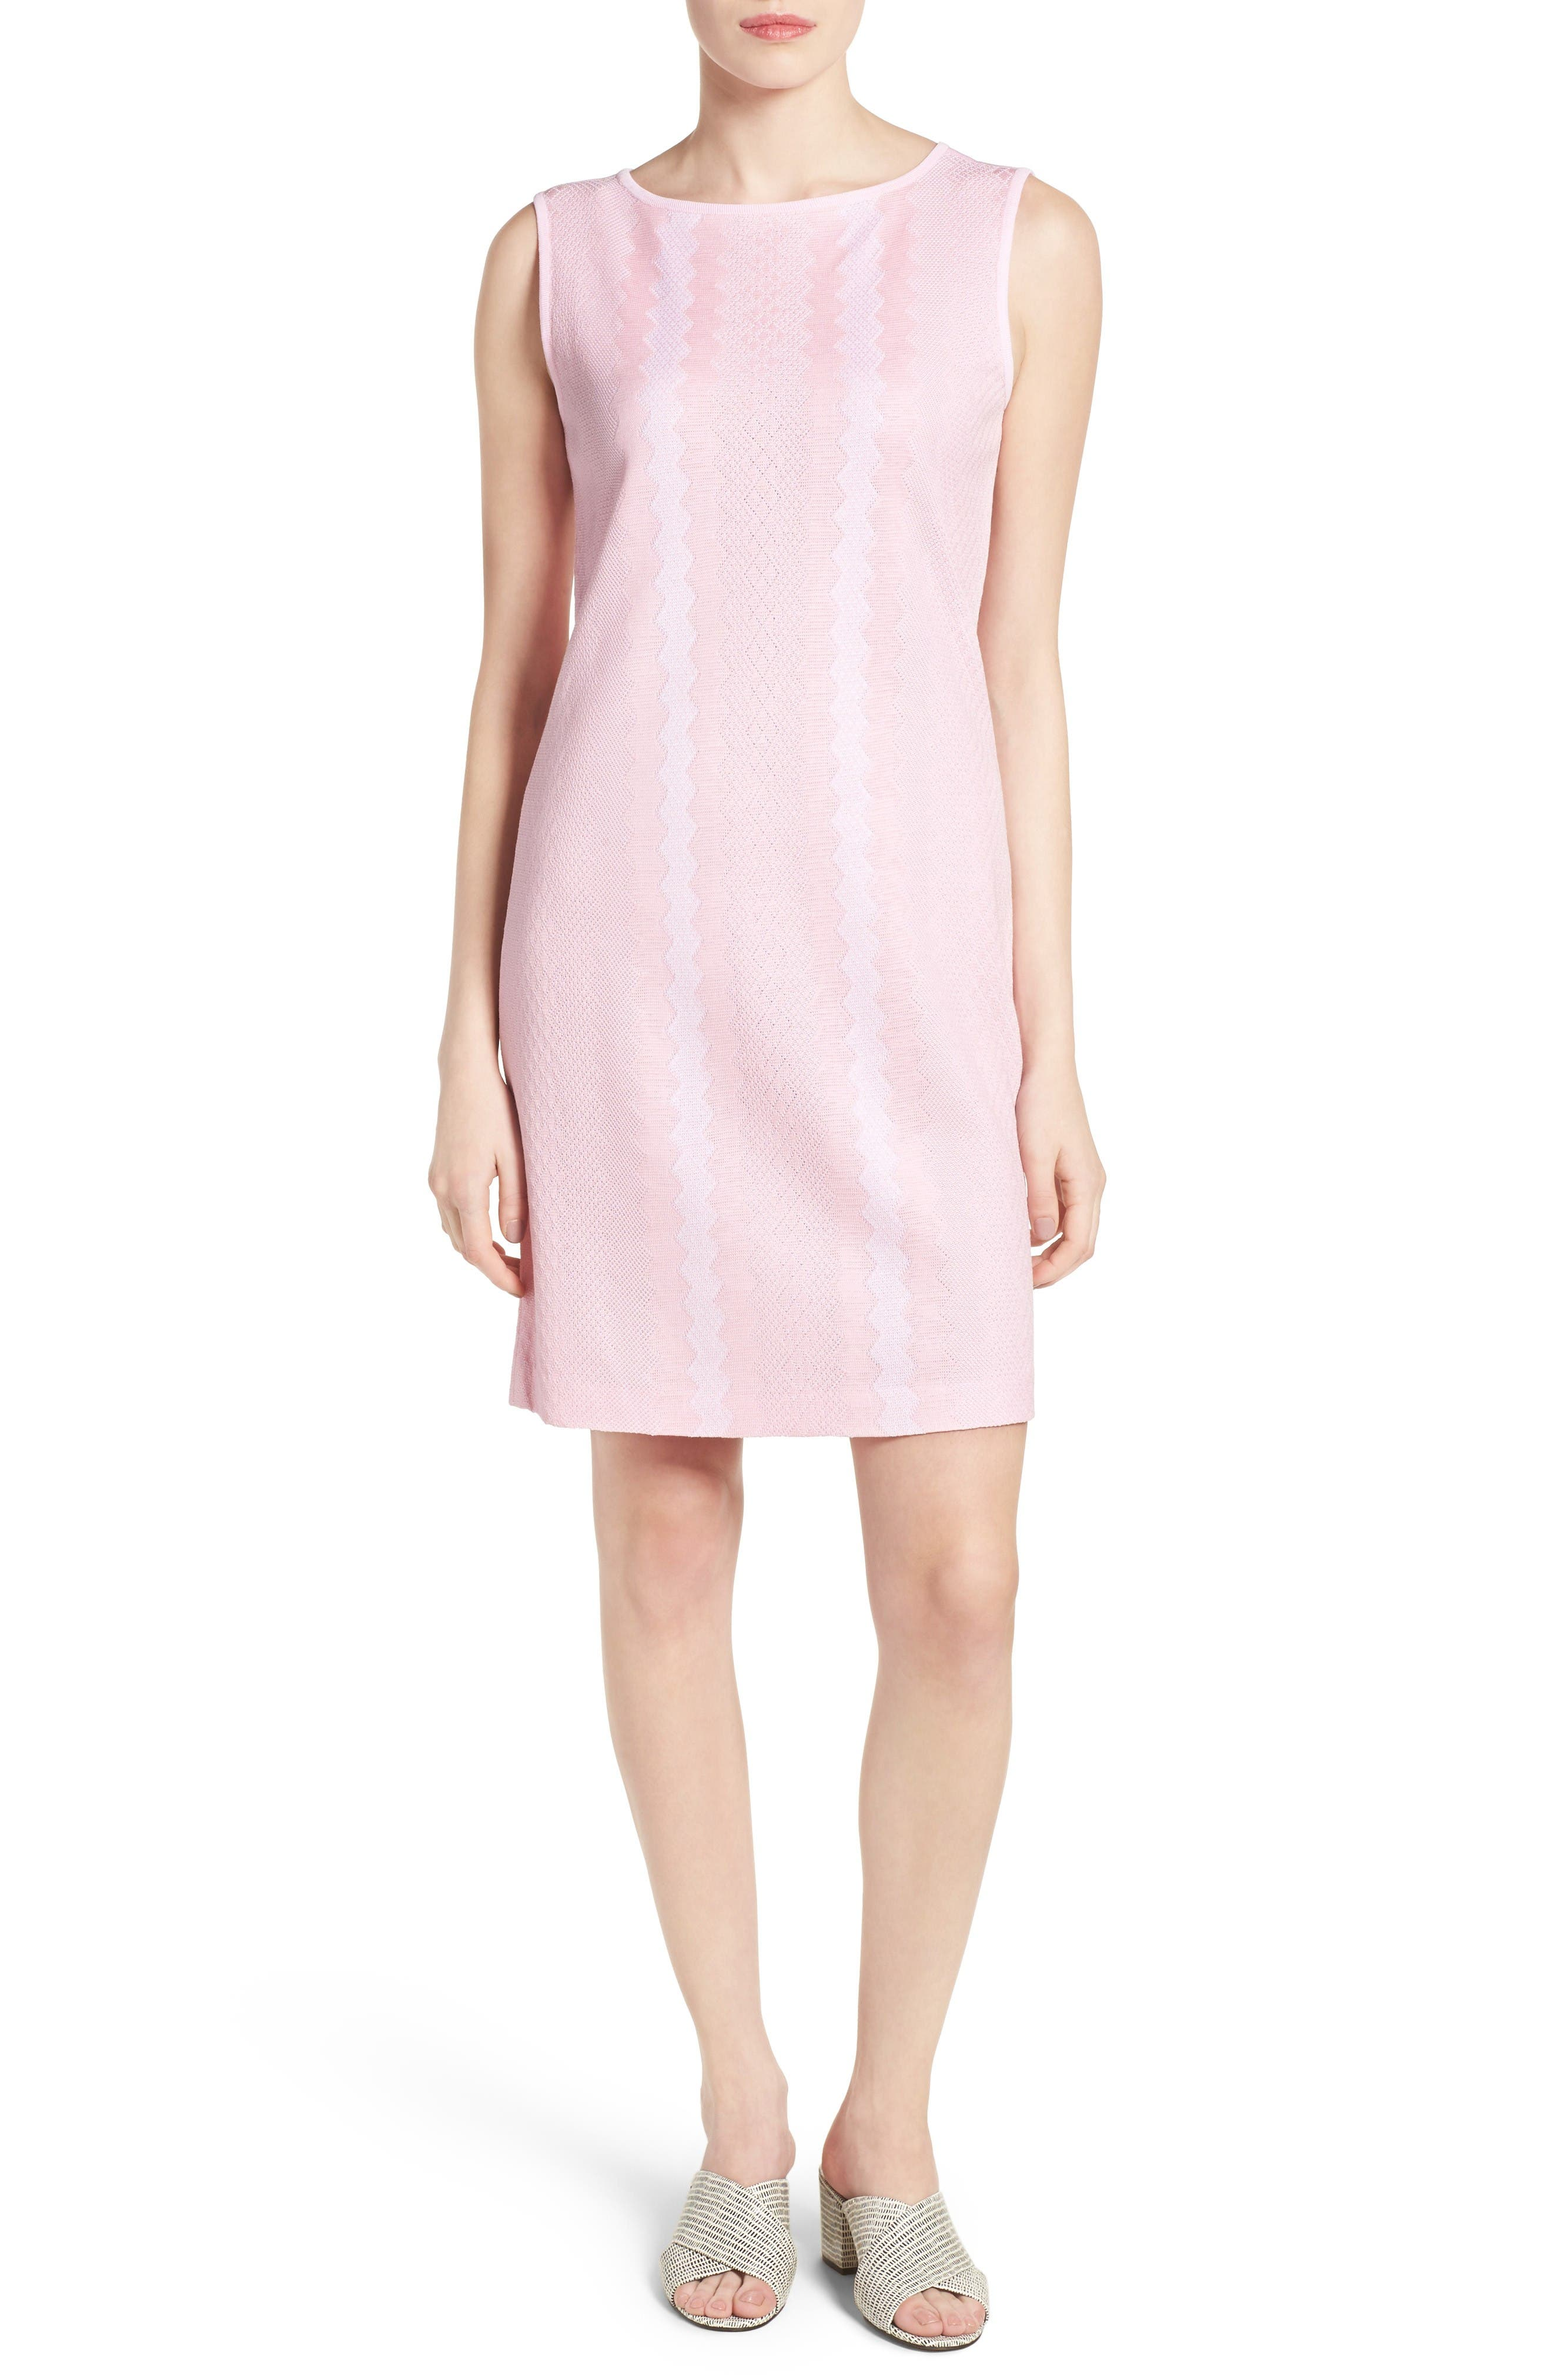 Sleeveless Knit Sheath Dress,                         Main,                         color, Perfect Pink/ White